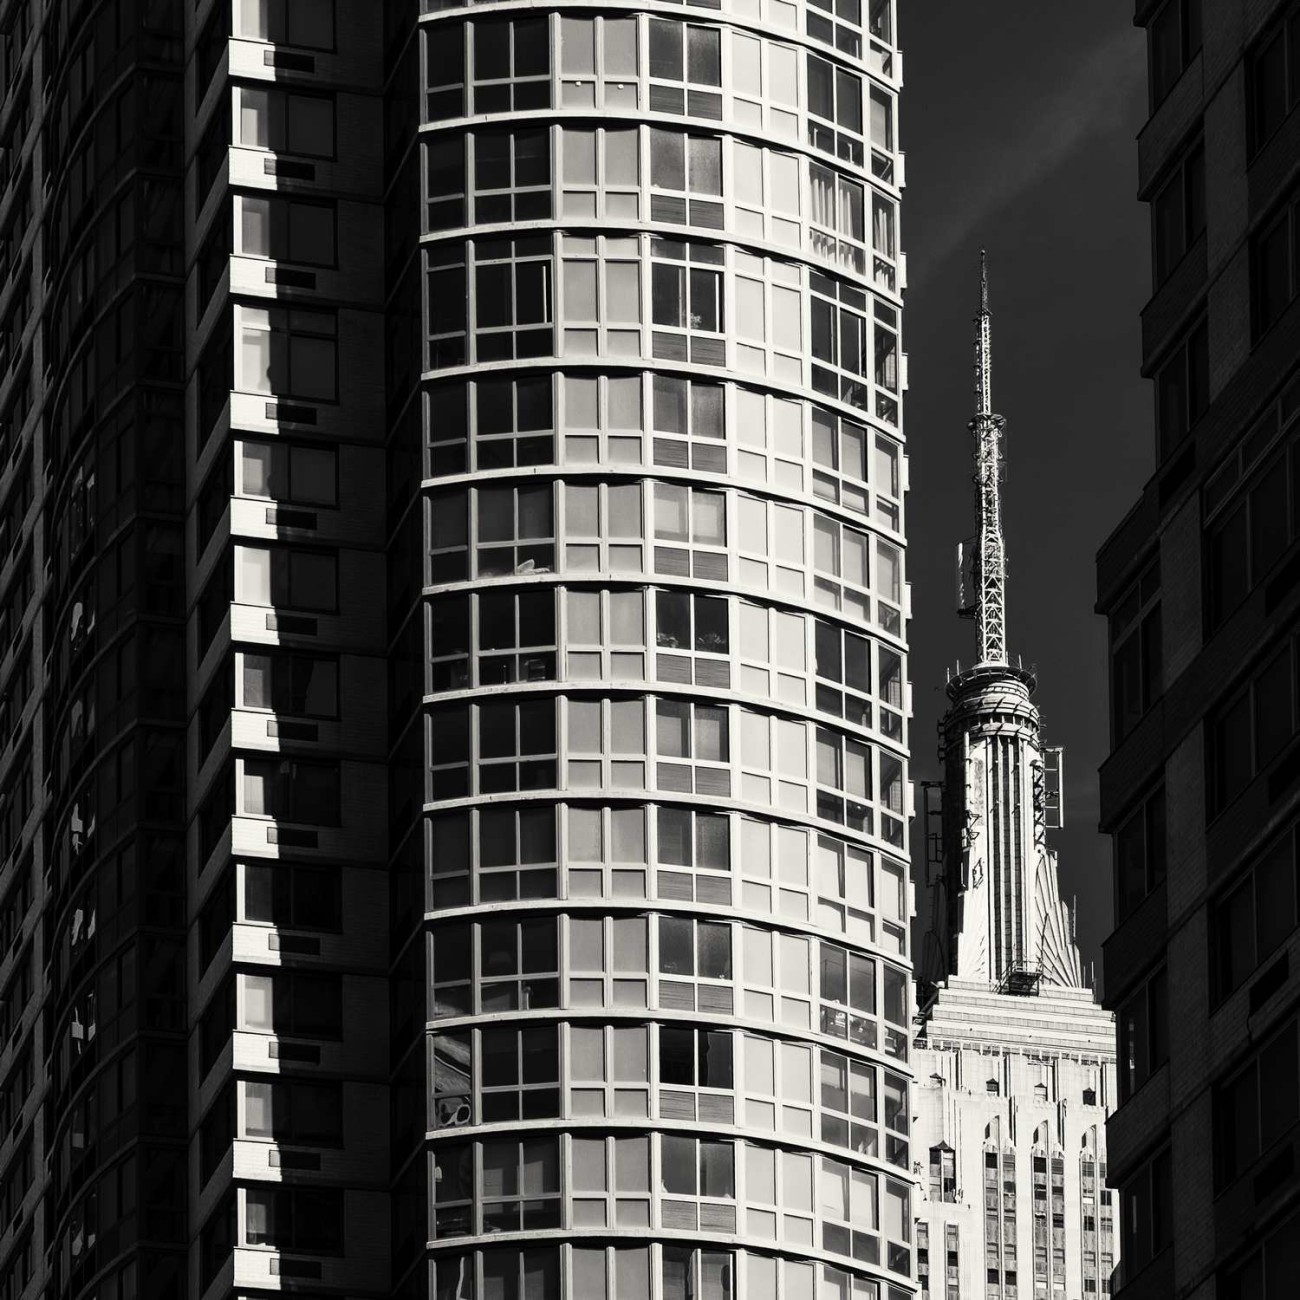 Empire State Building and apartments, NY, 2014